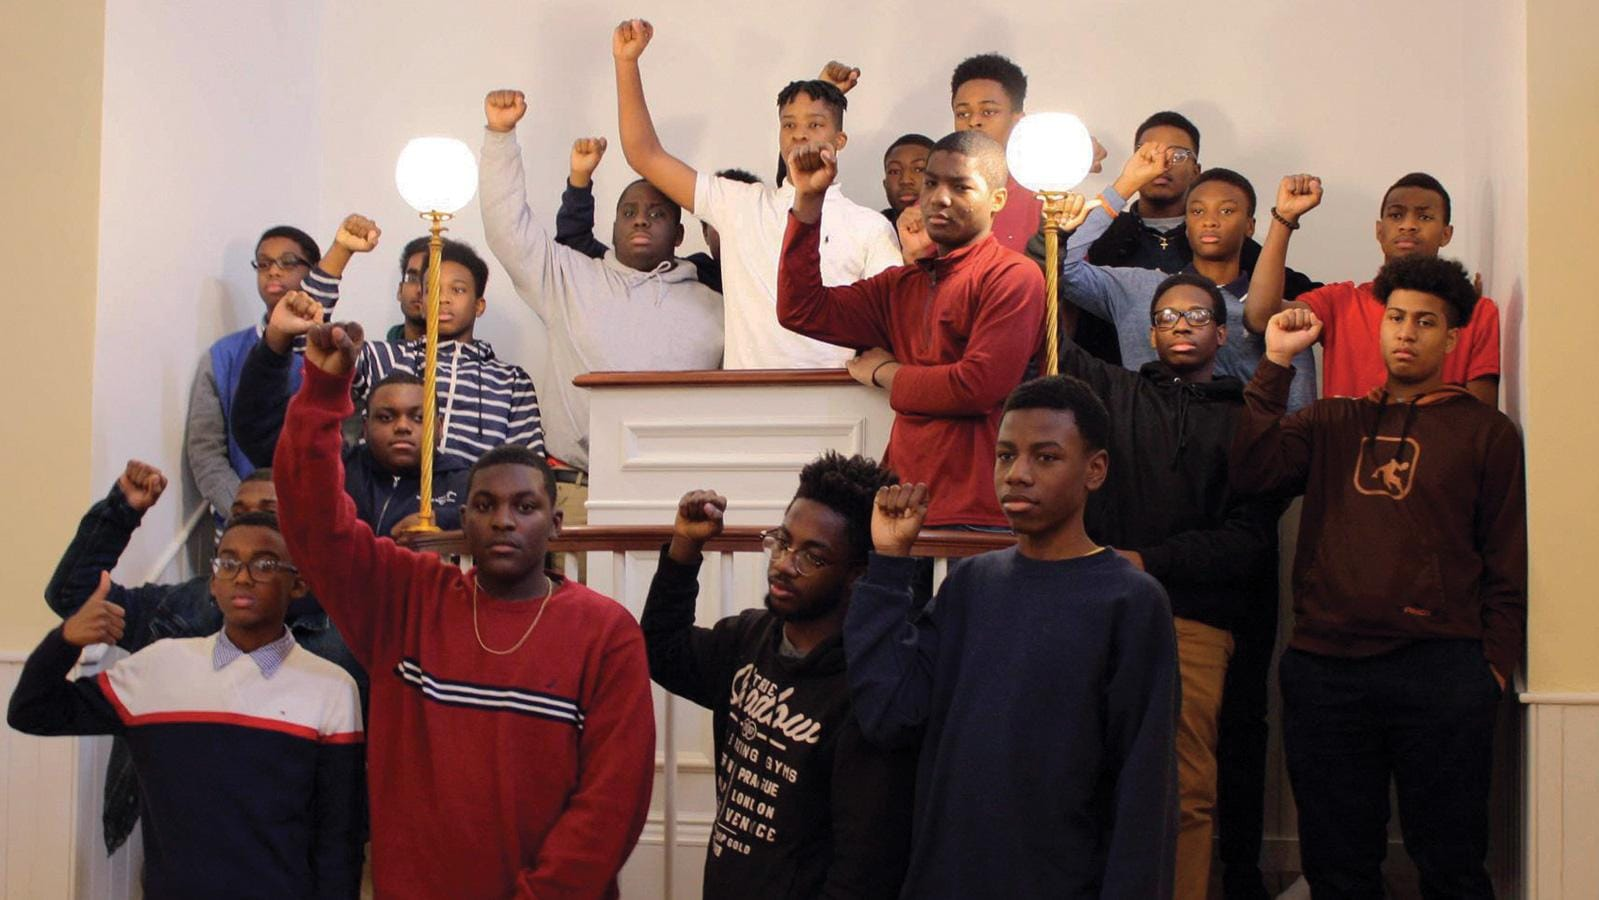 (slide 1 of 4) Group of young black teens with fists raised at The Museum of African American History  .